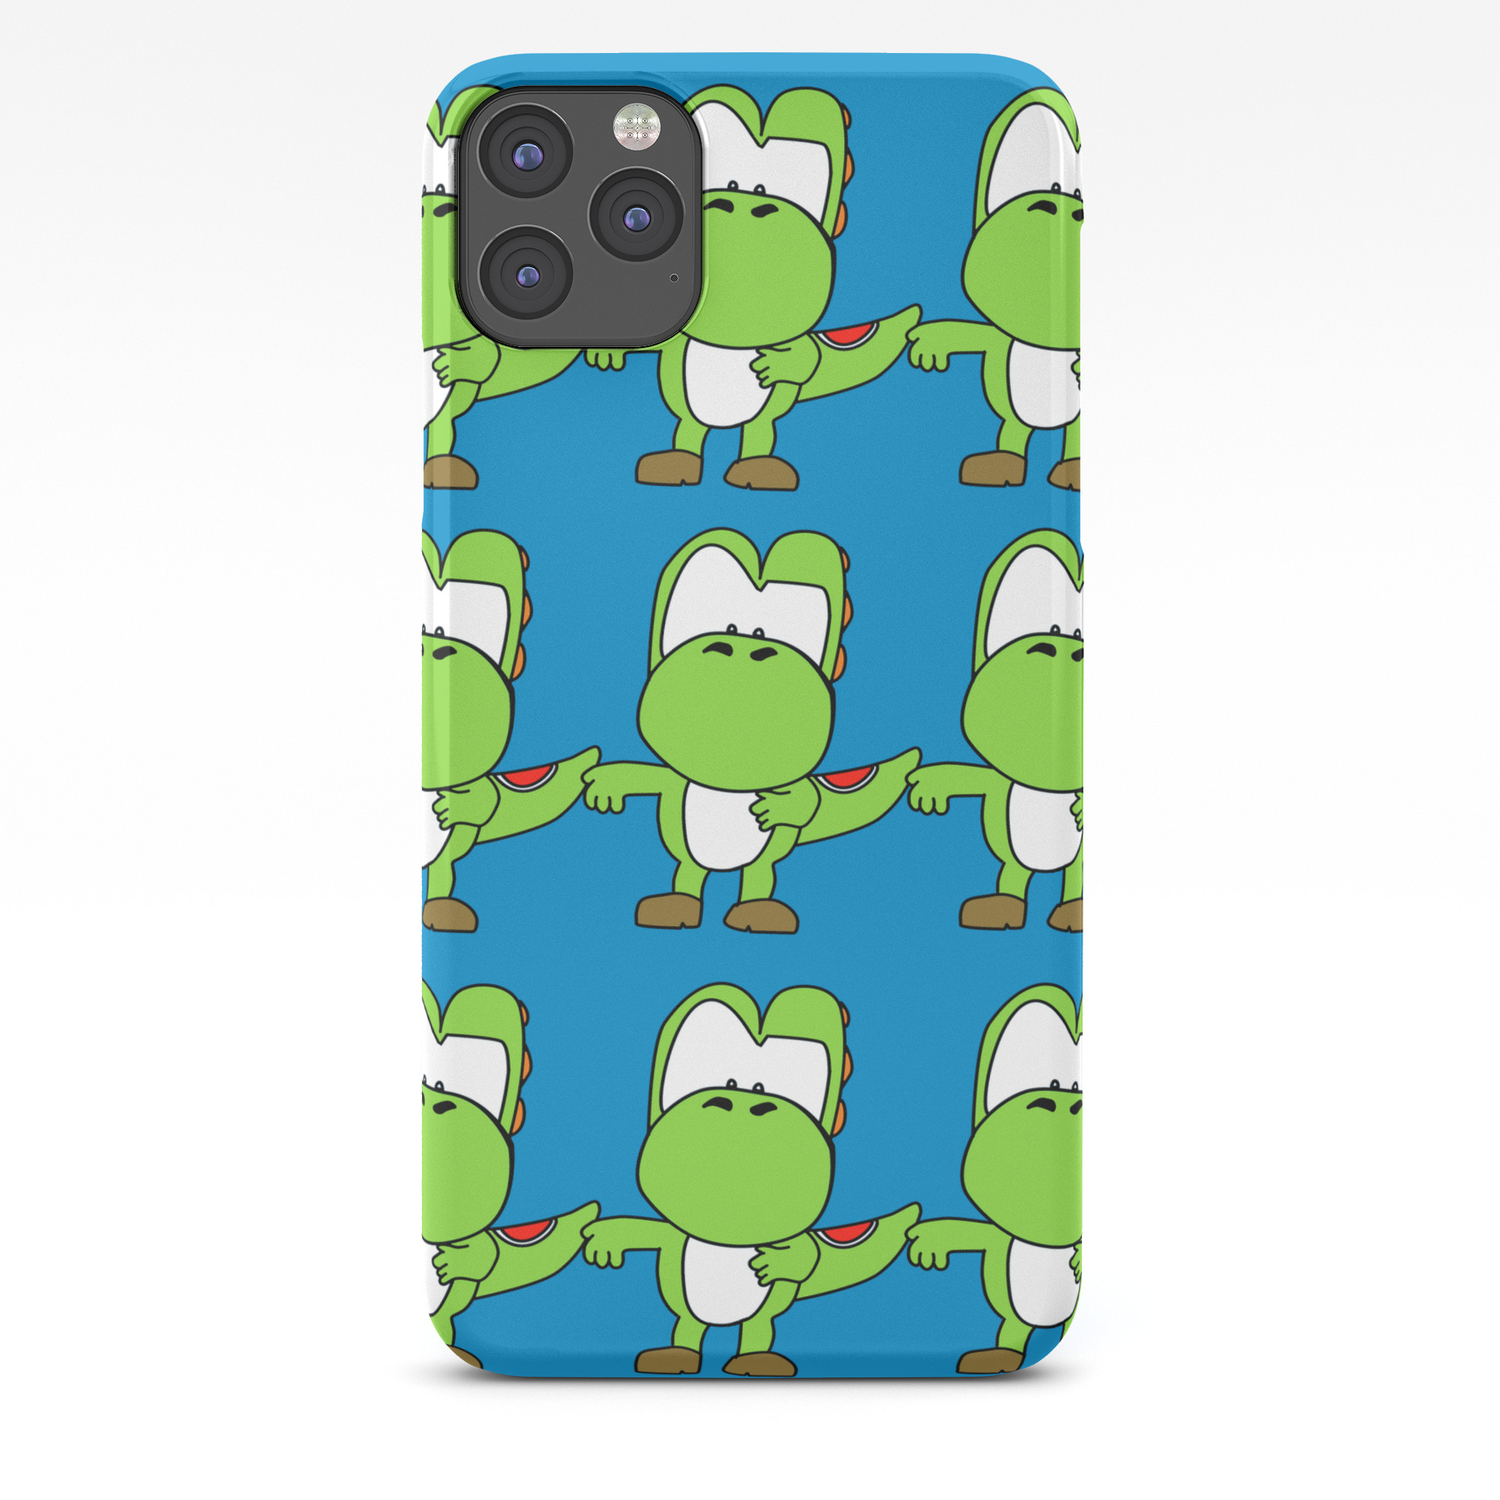 Custom Cartoon Blue Yoshi Wallpaper Iphone Case By